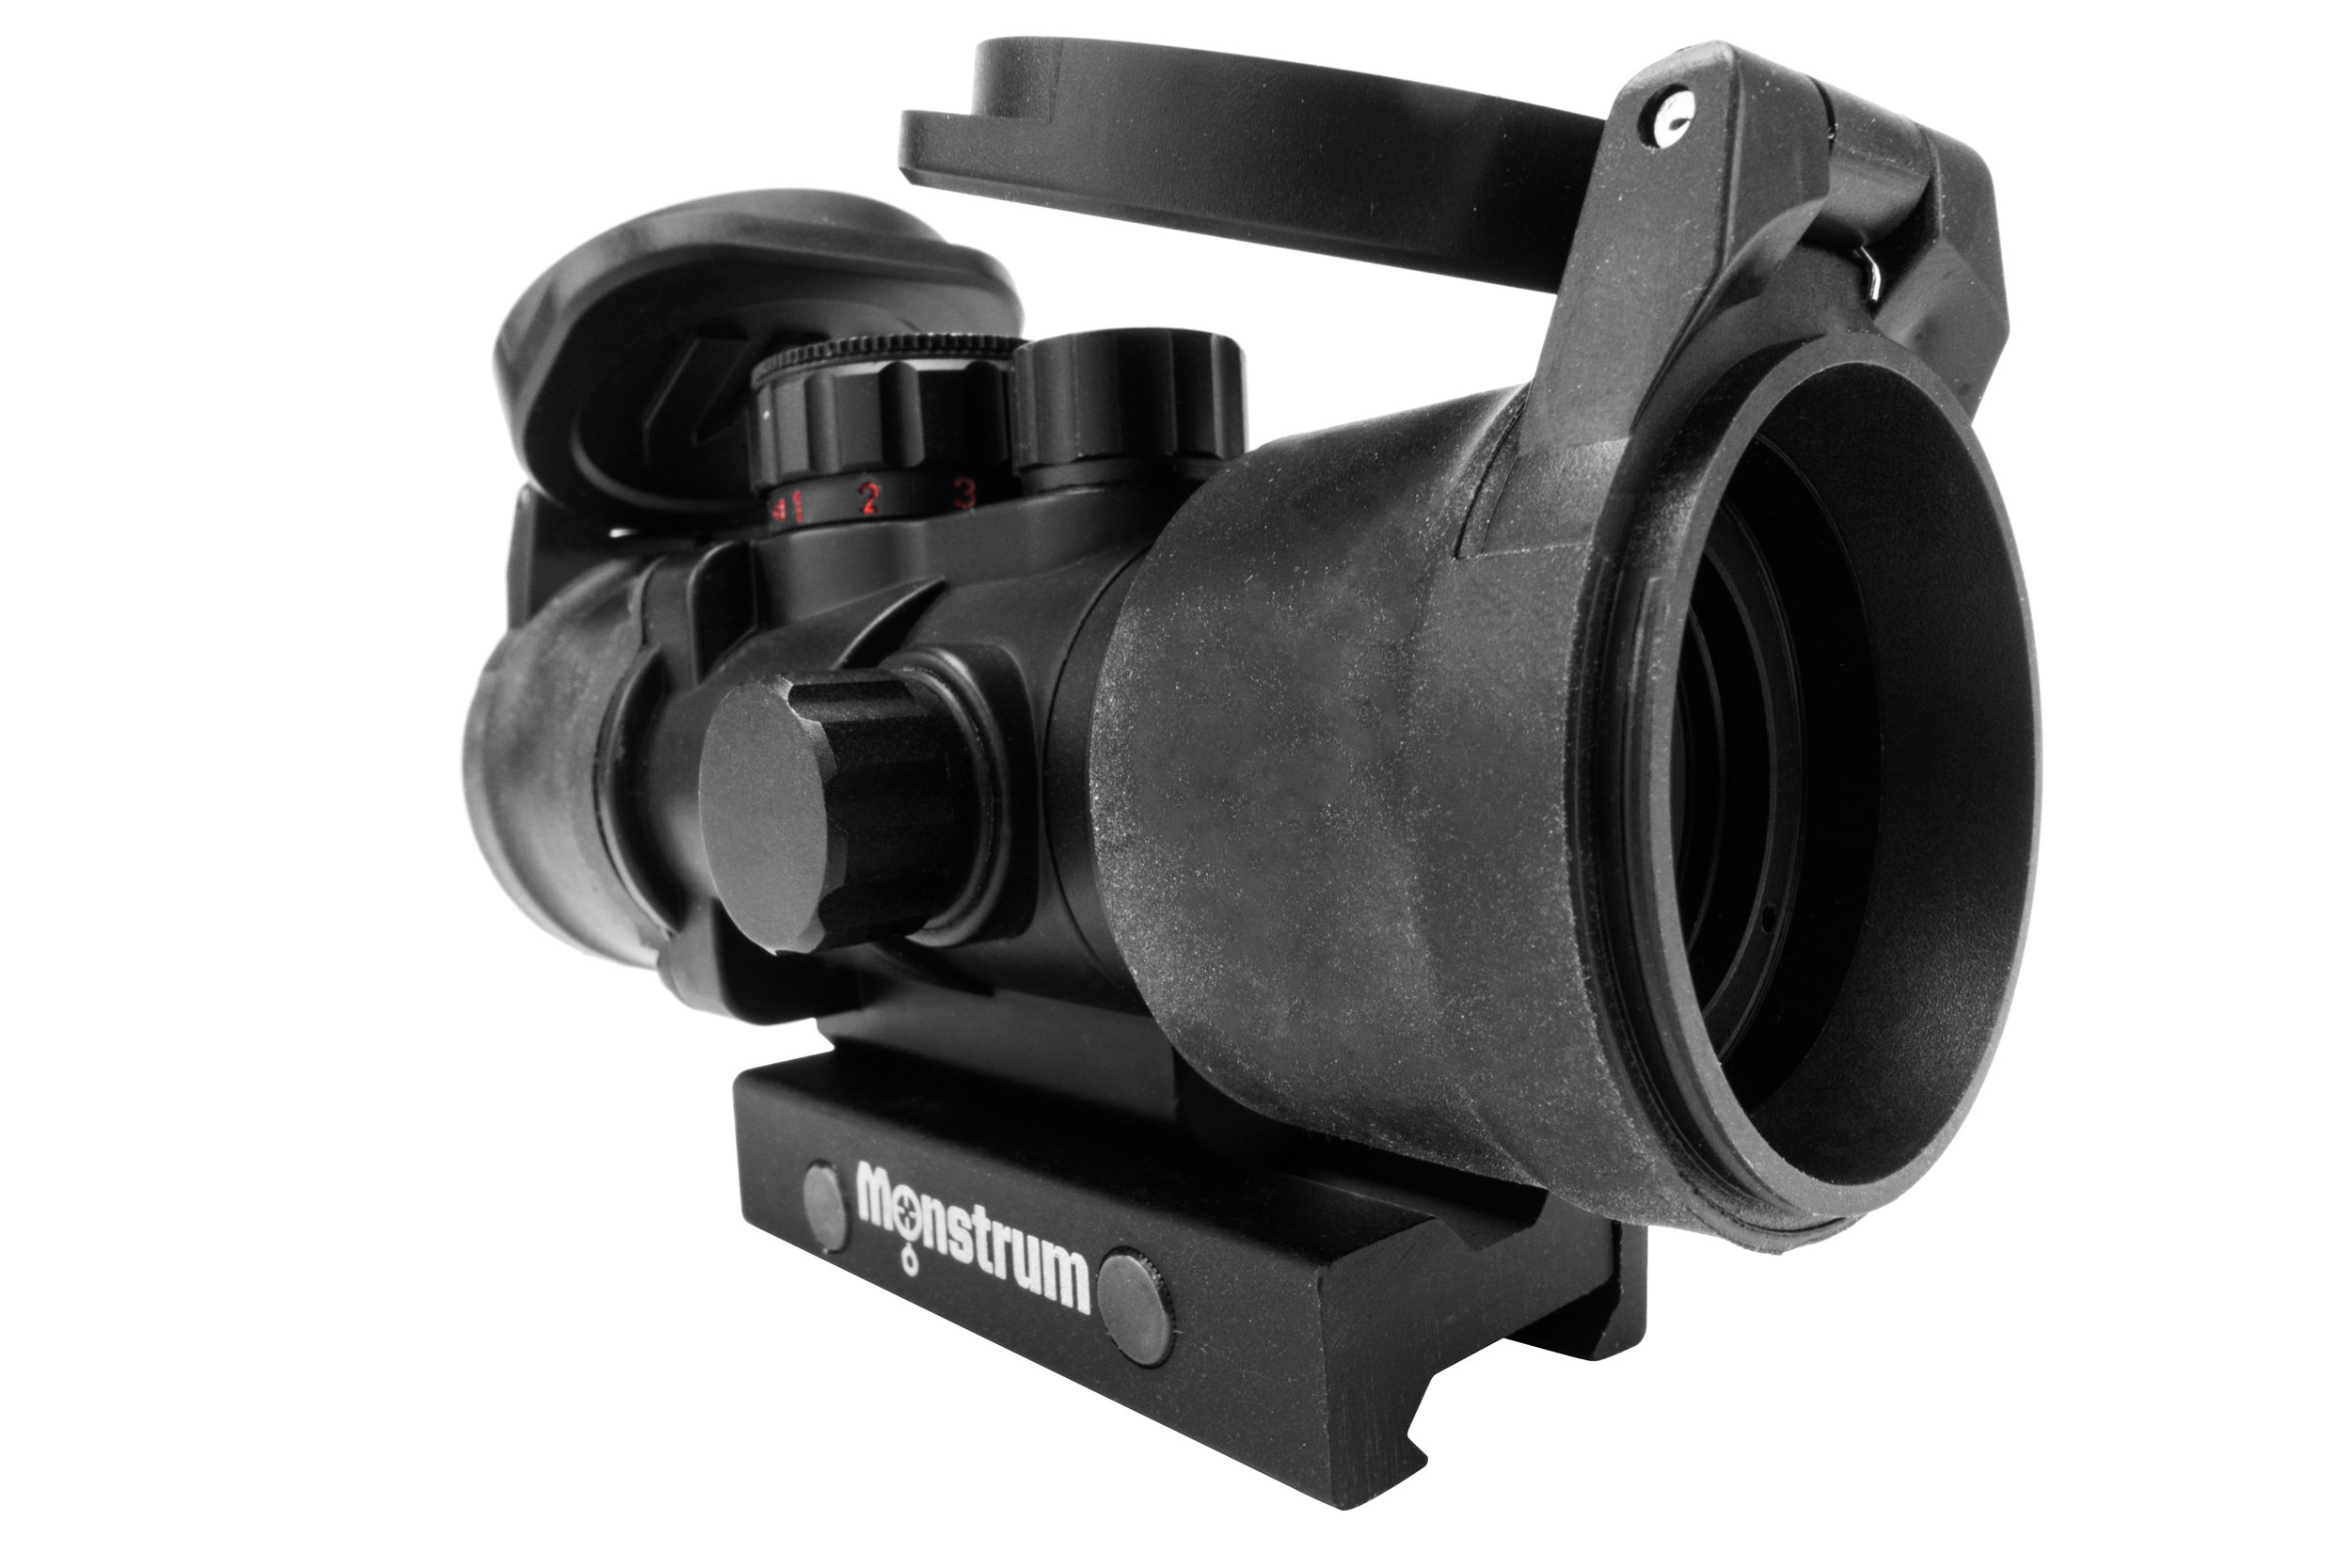 Monstrum Tactical S330P Ultra-Compact 3x Prism Scope (Black with Flip-Up Lens Covers) by Monstrum Tactical